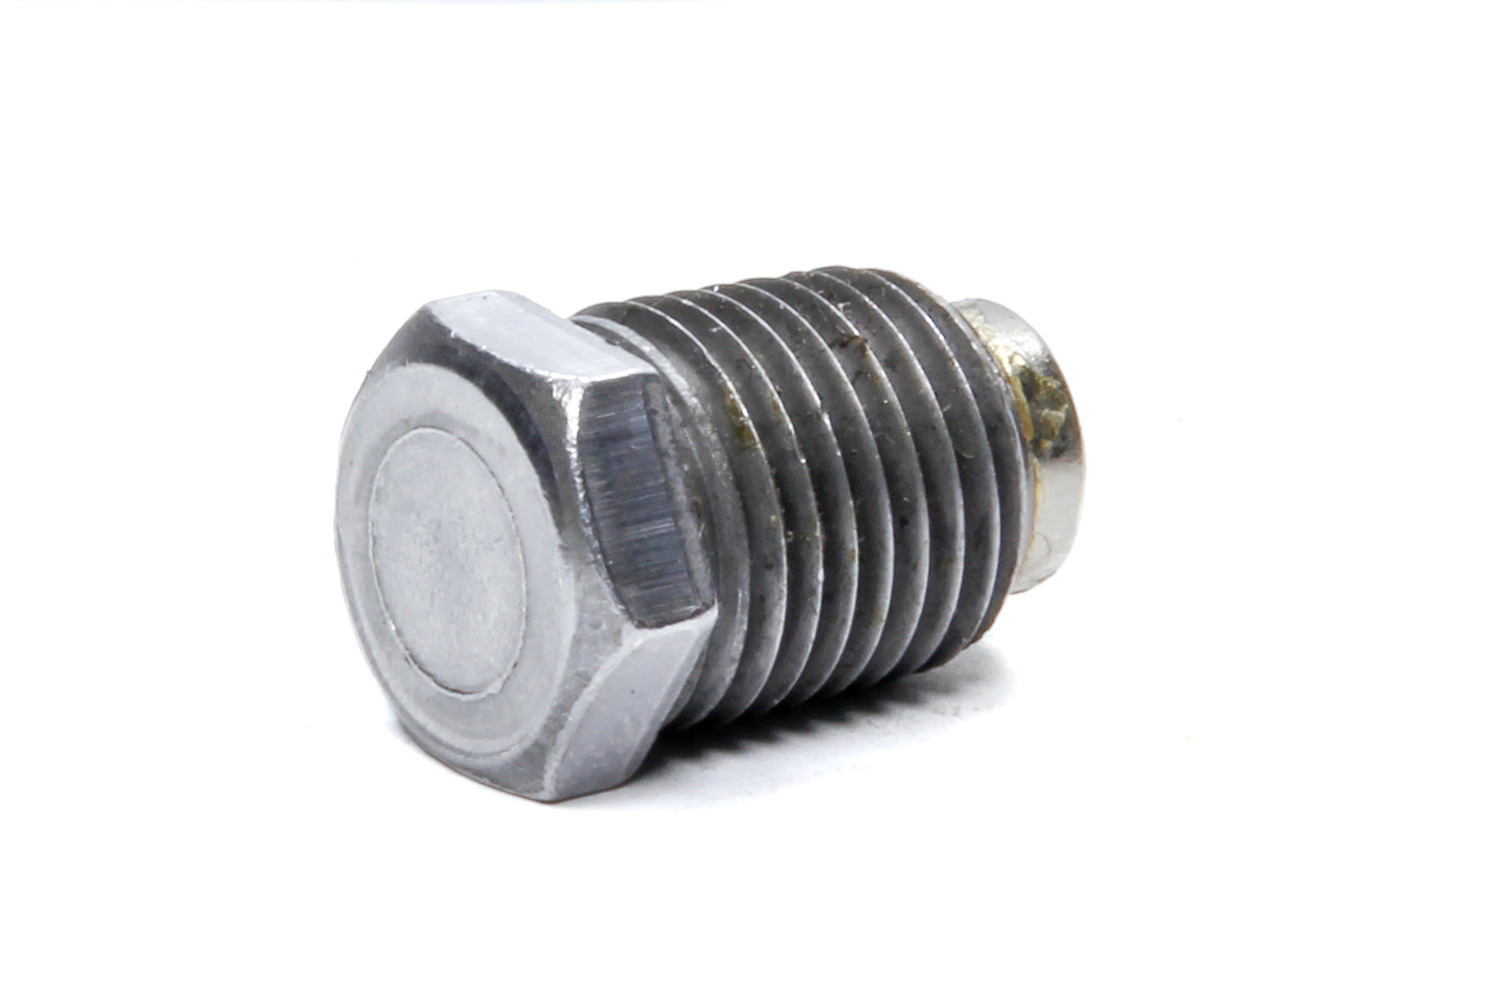 Bert Transmissions SG-1063 Drain Plug, 1/4 in NPT, Hex Head, Magnetic, Steel, Zinc Oxide, Bert Second Generation Transmissions, Each